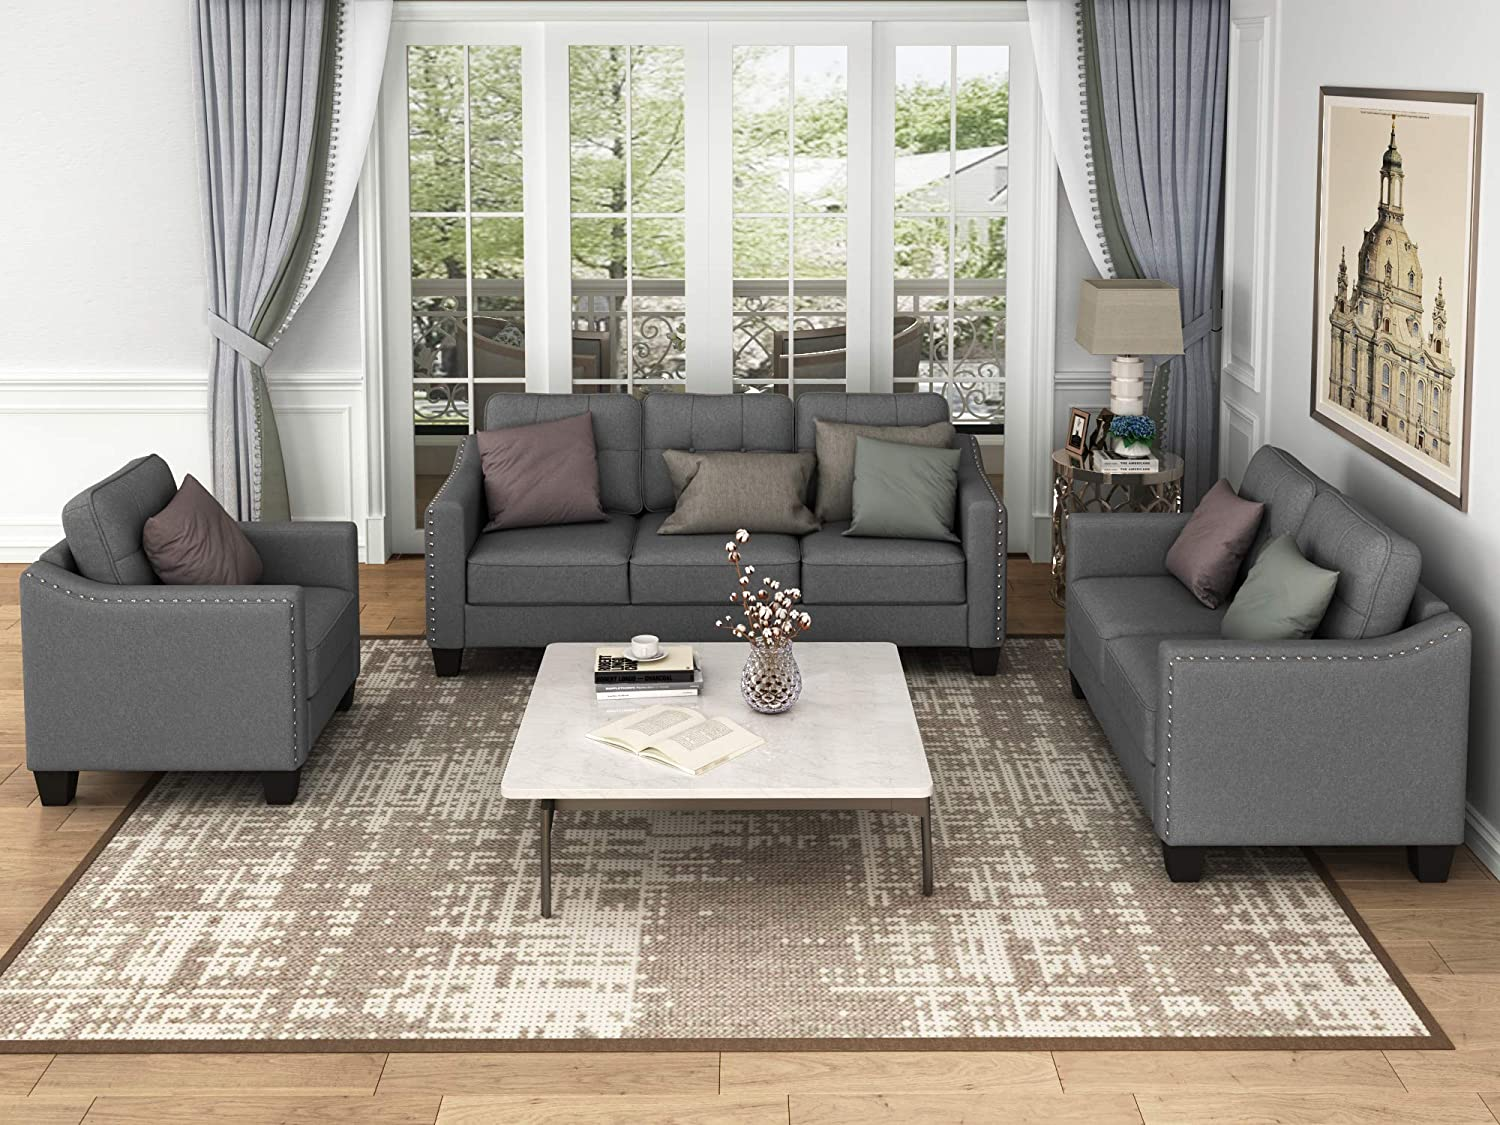 3 Piece Upholstered Sectional Sofa 2021 autumn and winter new Furniture Living Easy-to-use Set for Room